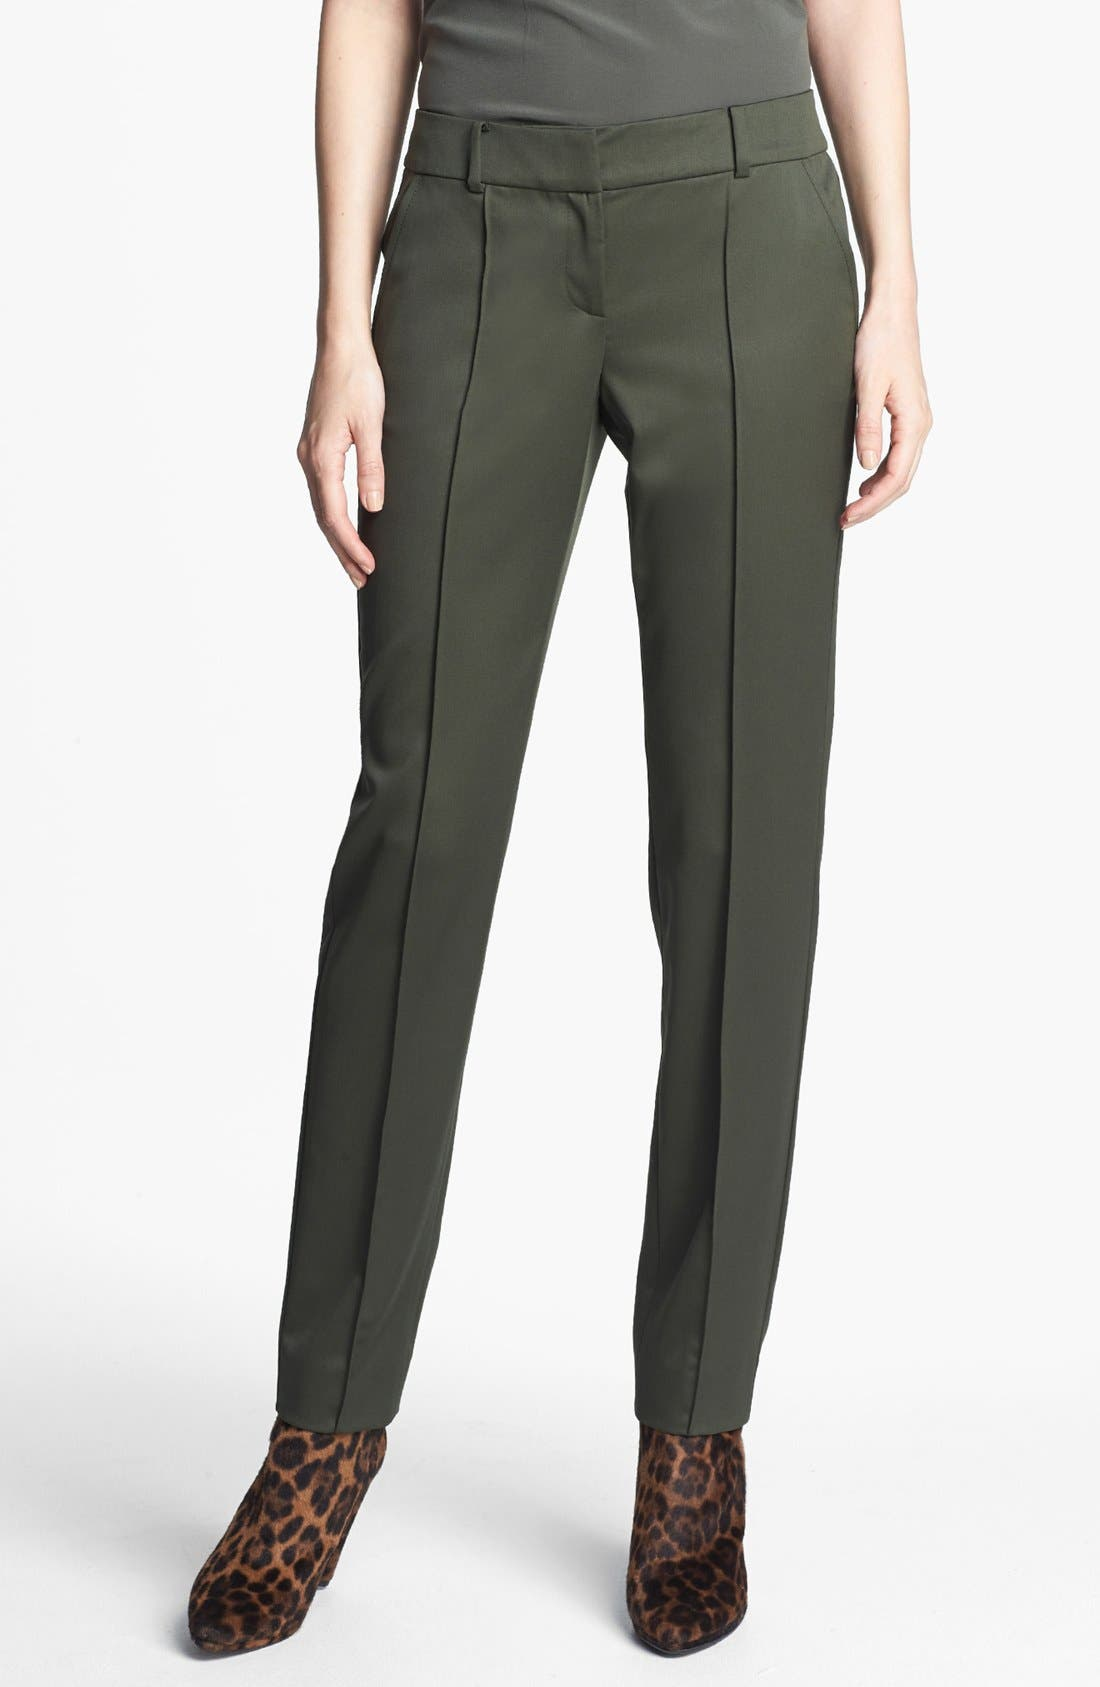 Alternate Image 1 Selected - St. John Collection 'Carine' Venetian Wool Ankle Pants